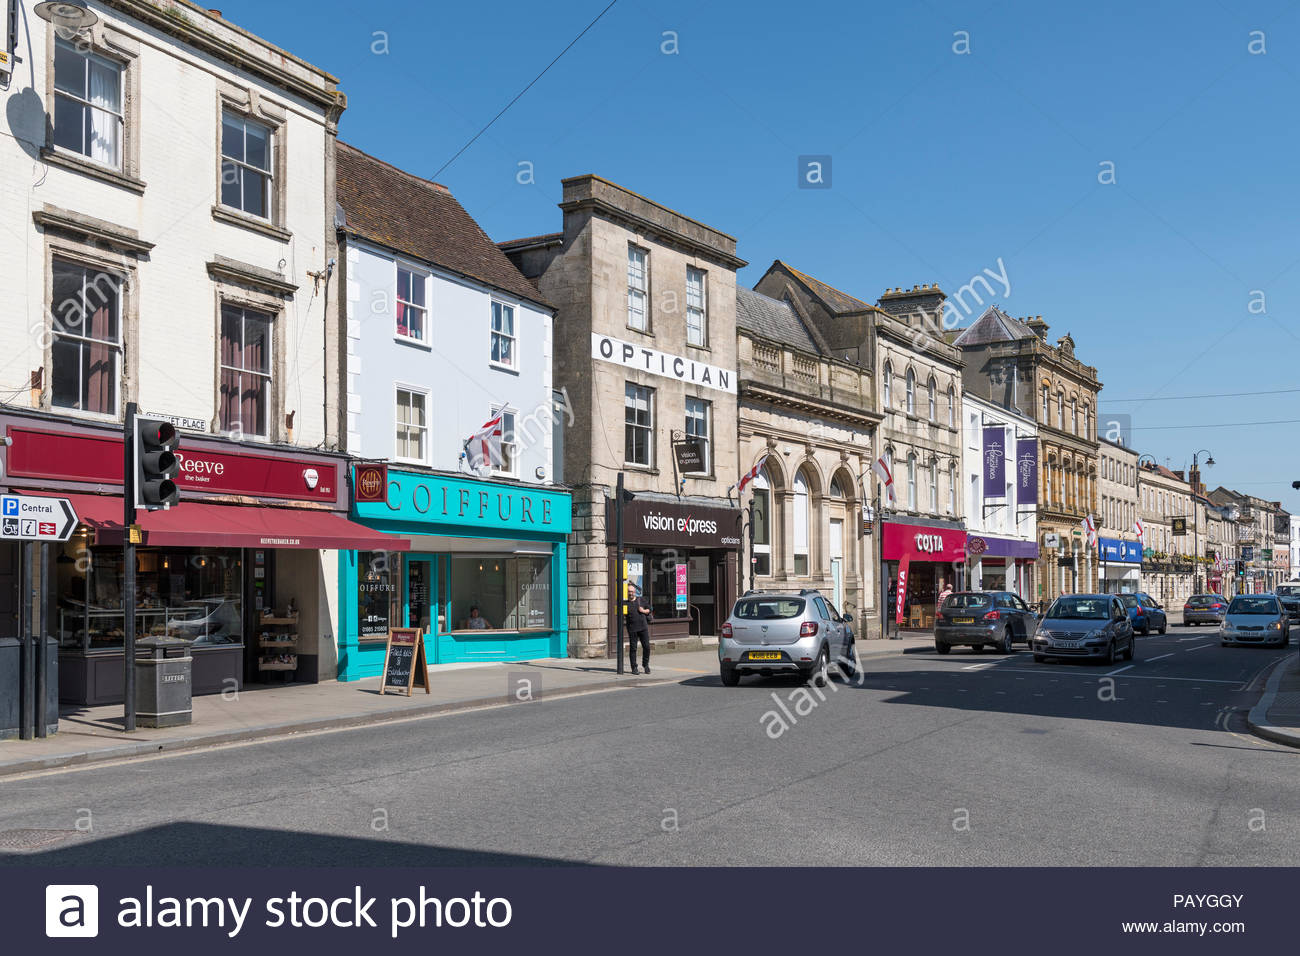 Warminster wiltshire united kingdom